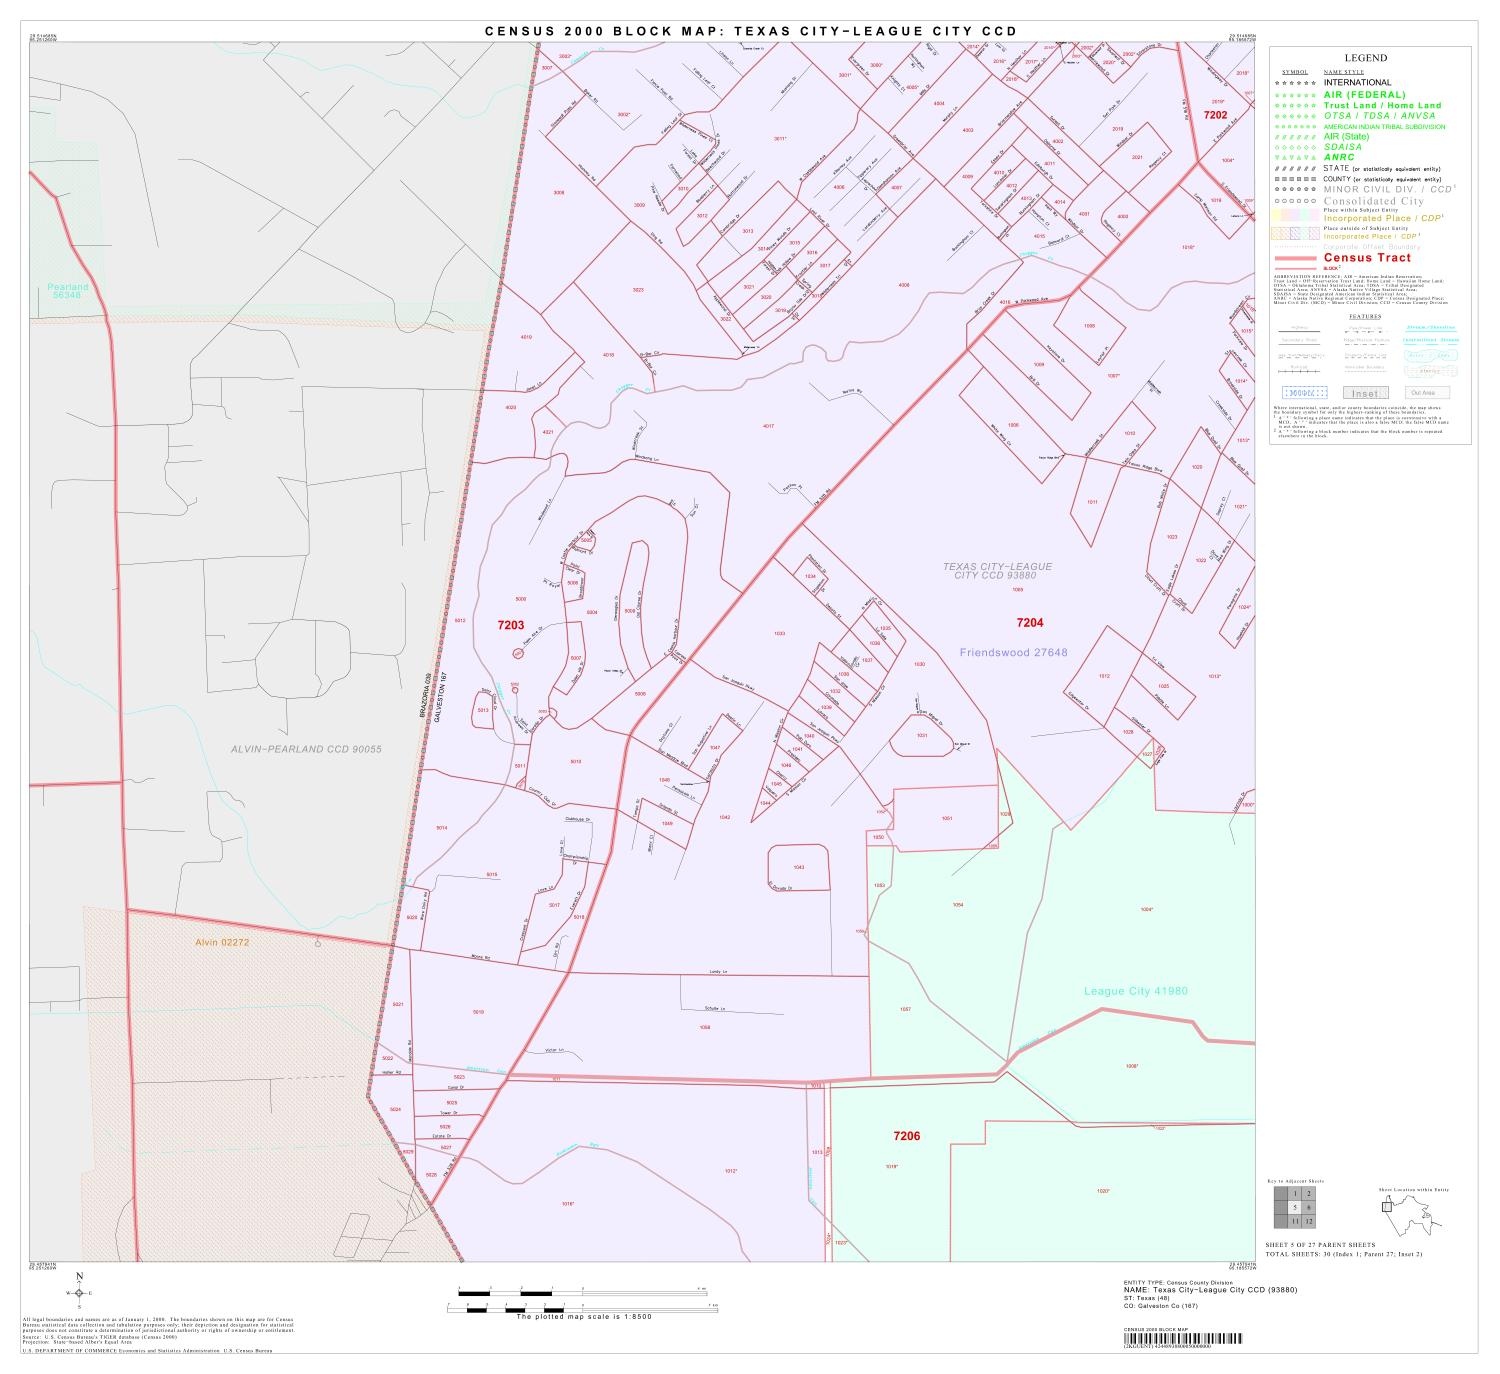 Map Of Texas City.2000 Census County Subdivison Block Map Texas City League City Ccd